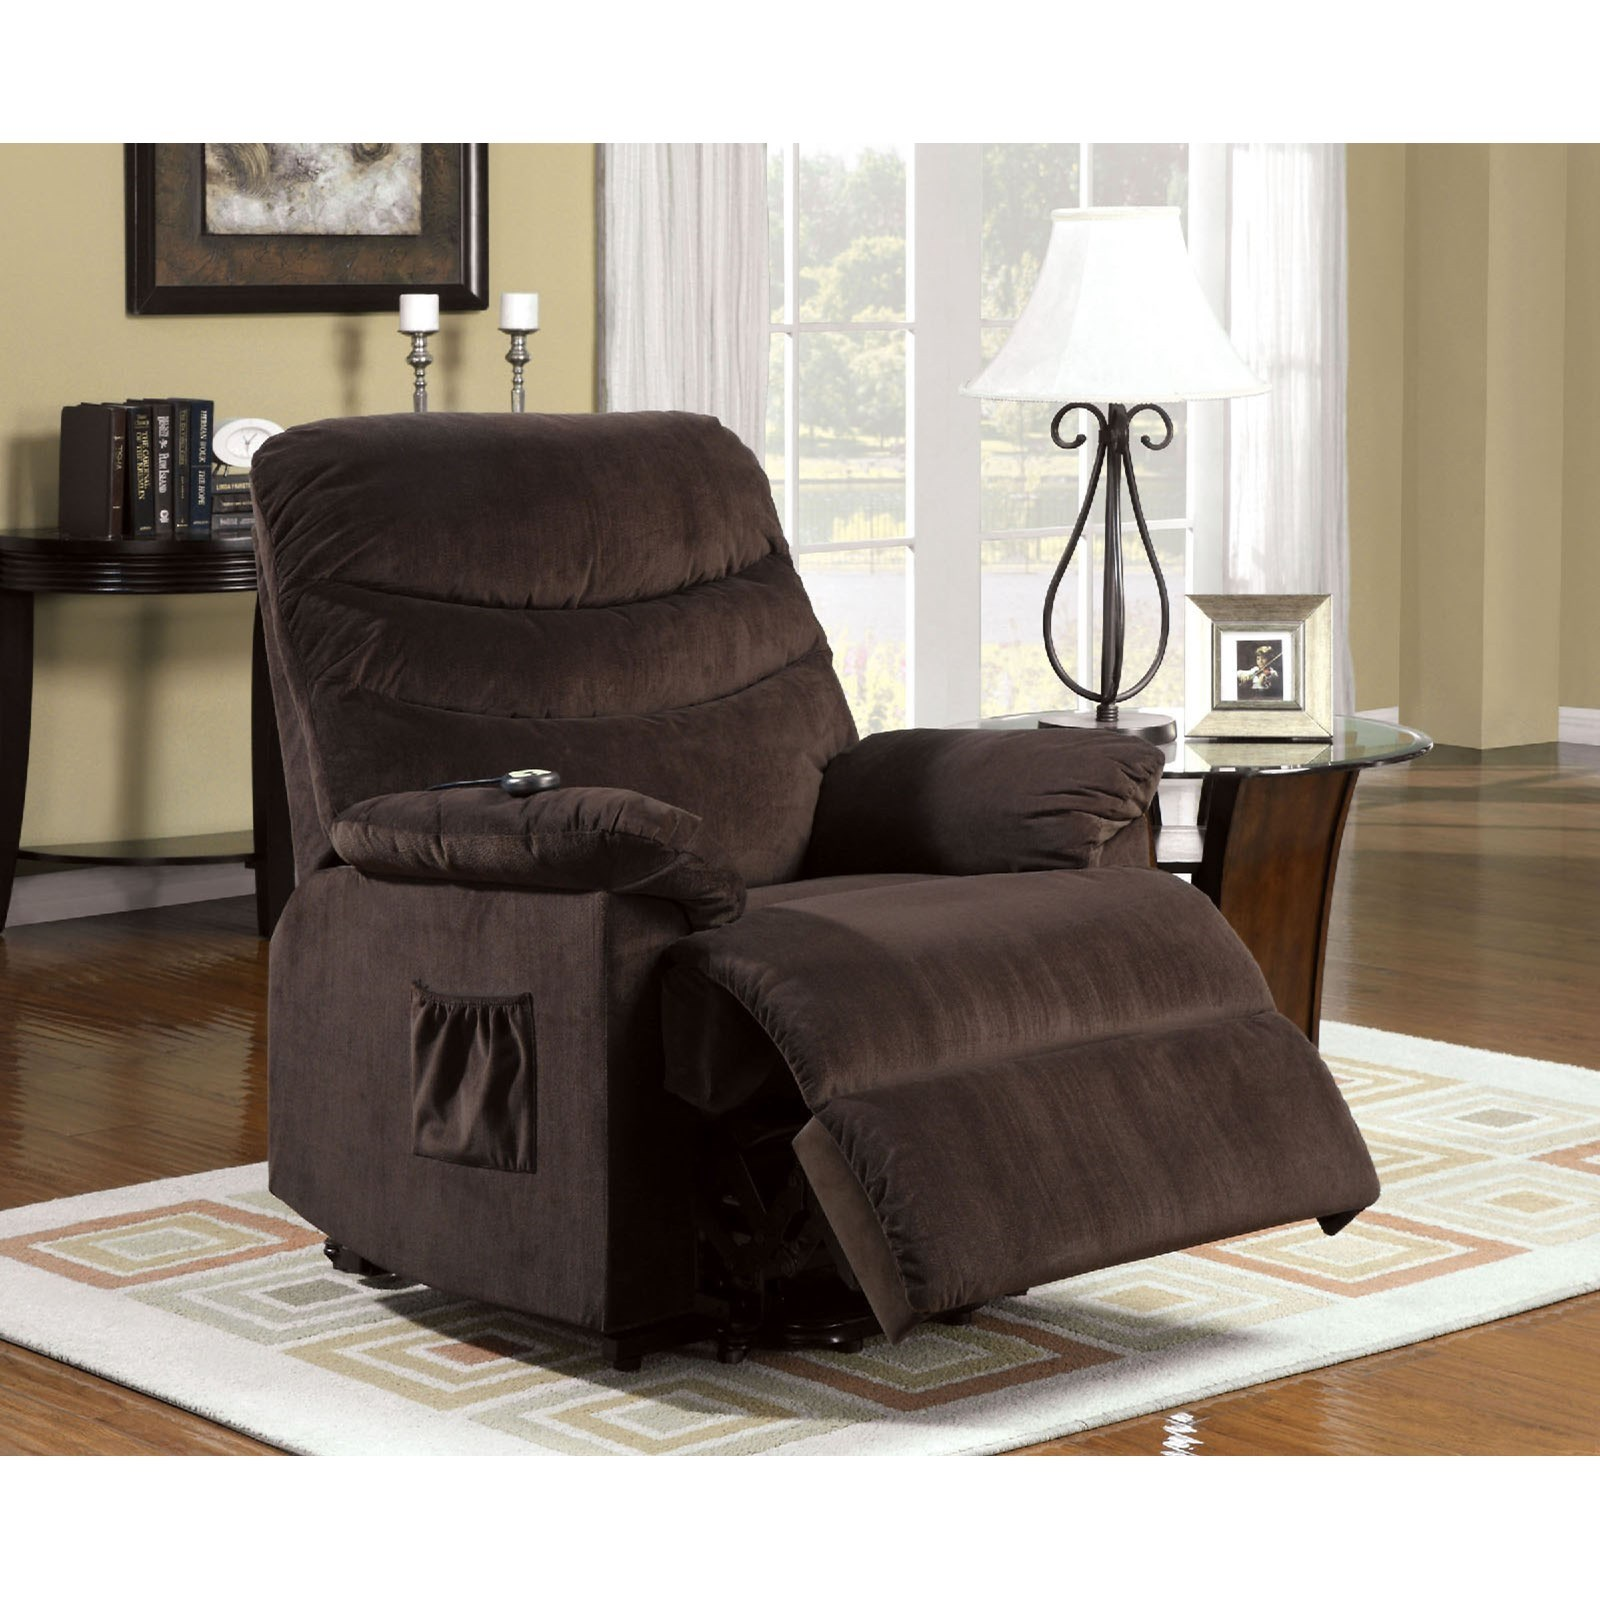 Furniture Of America Foa Perth Cm Rc6933 Casual Power - Living Room Chairs Perth